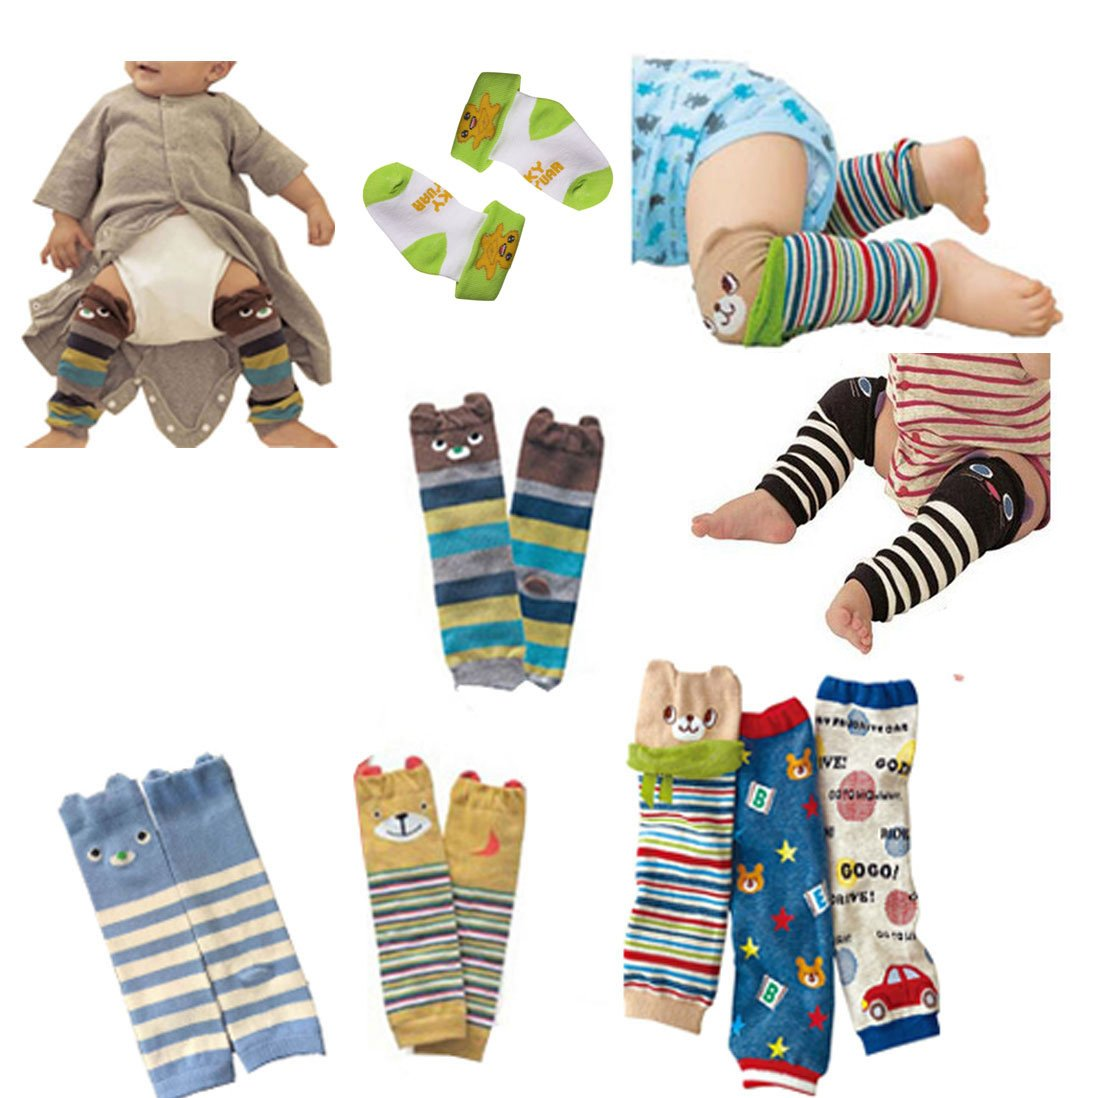 CMK Trendy Kids 6 Pairs Baby Leg Warmers Leggings Kneepads for Toddler Boys/&Girls Crawling Socks